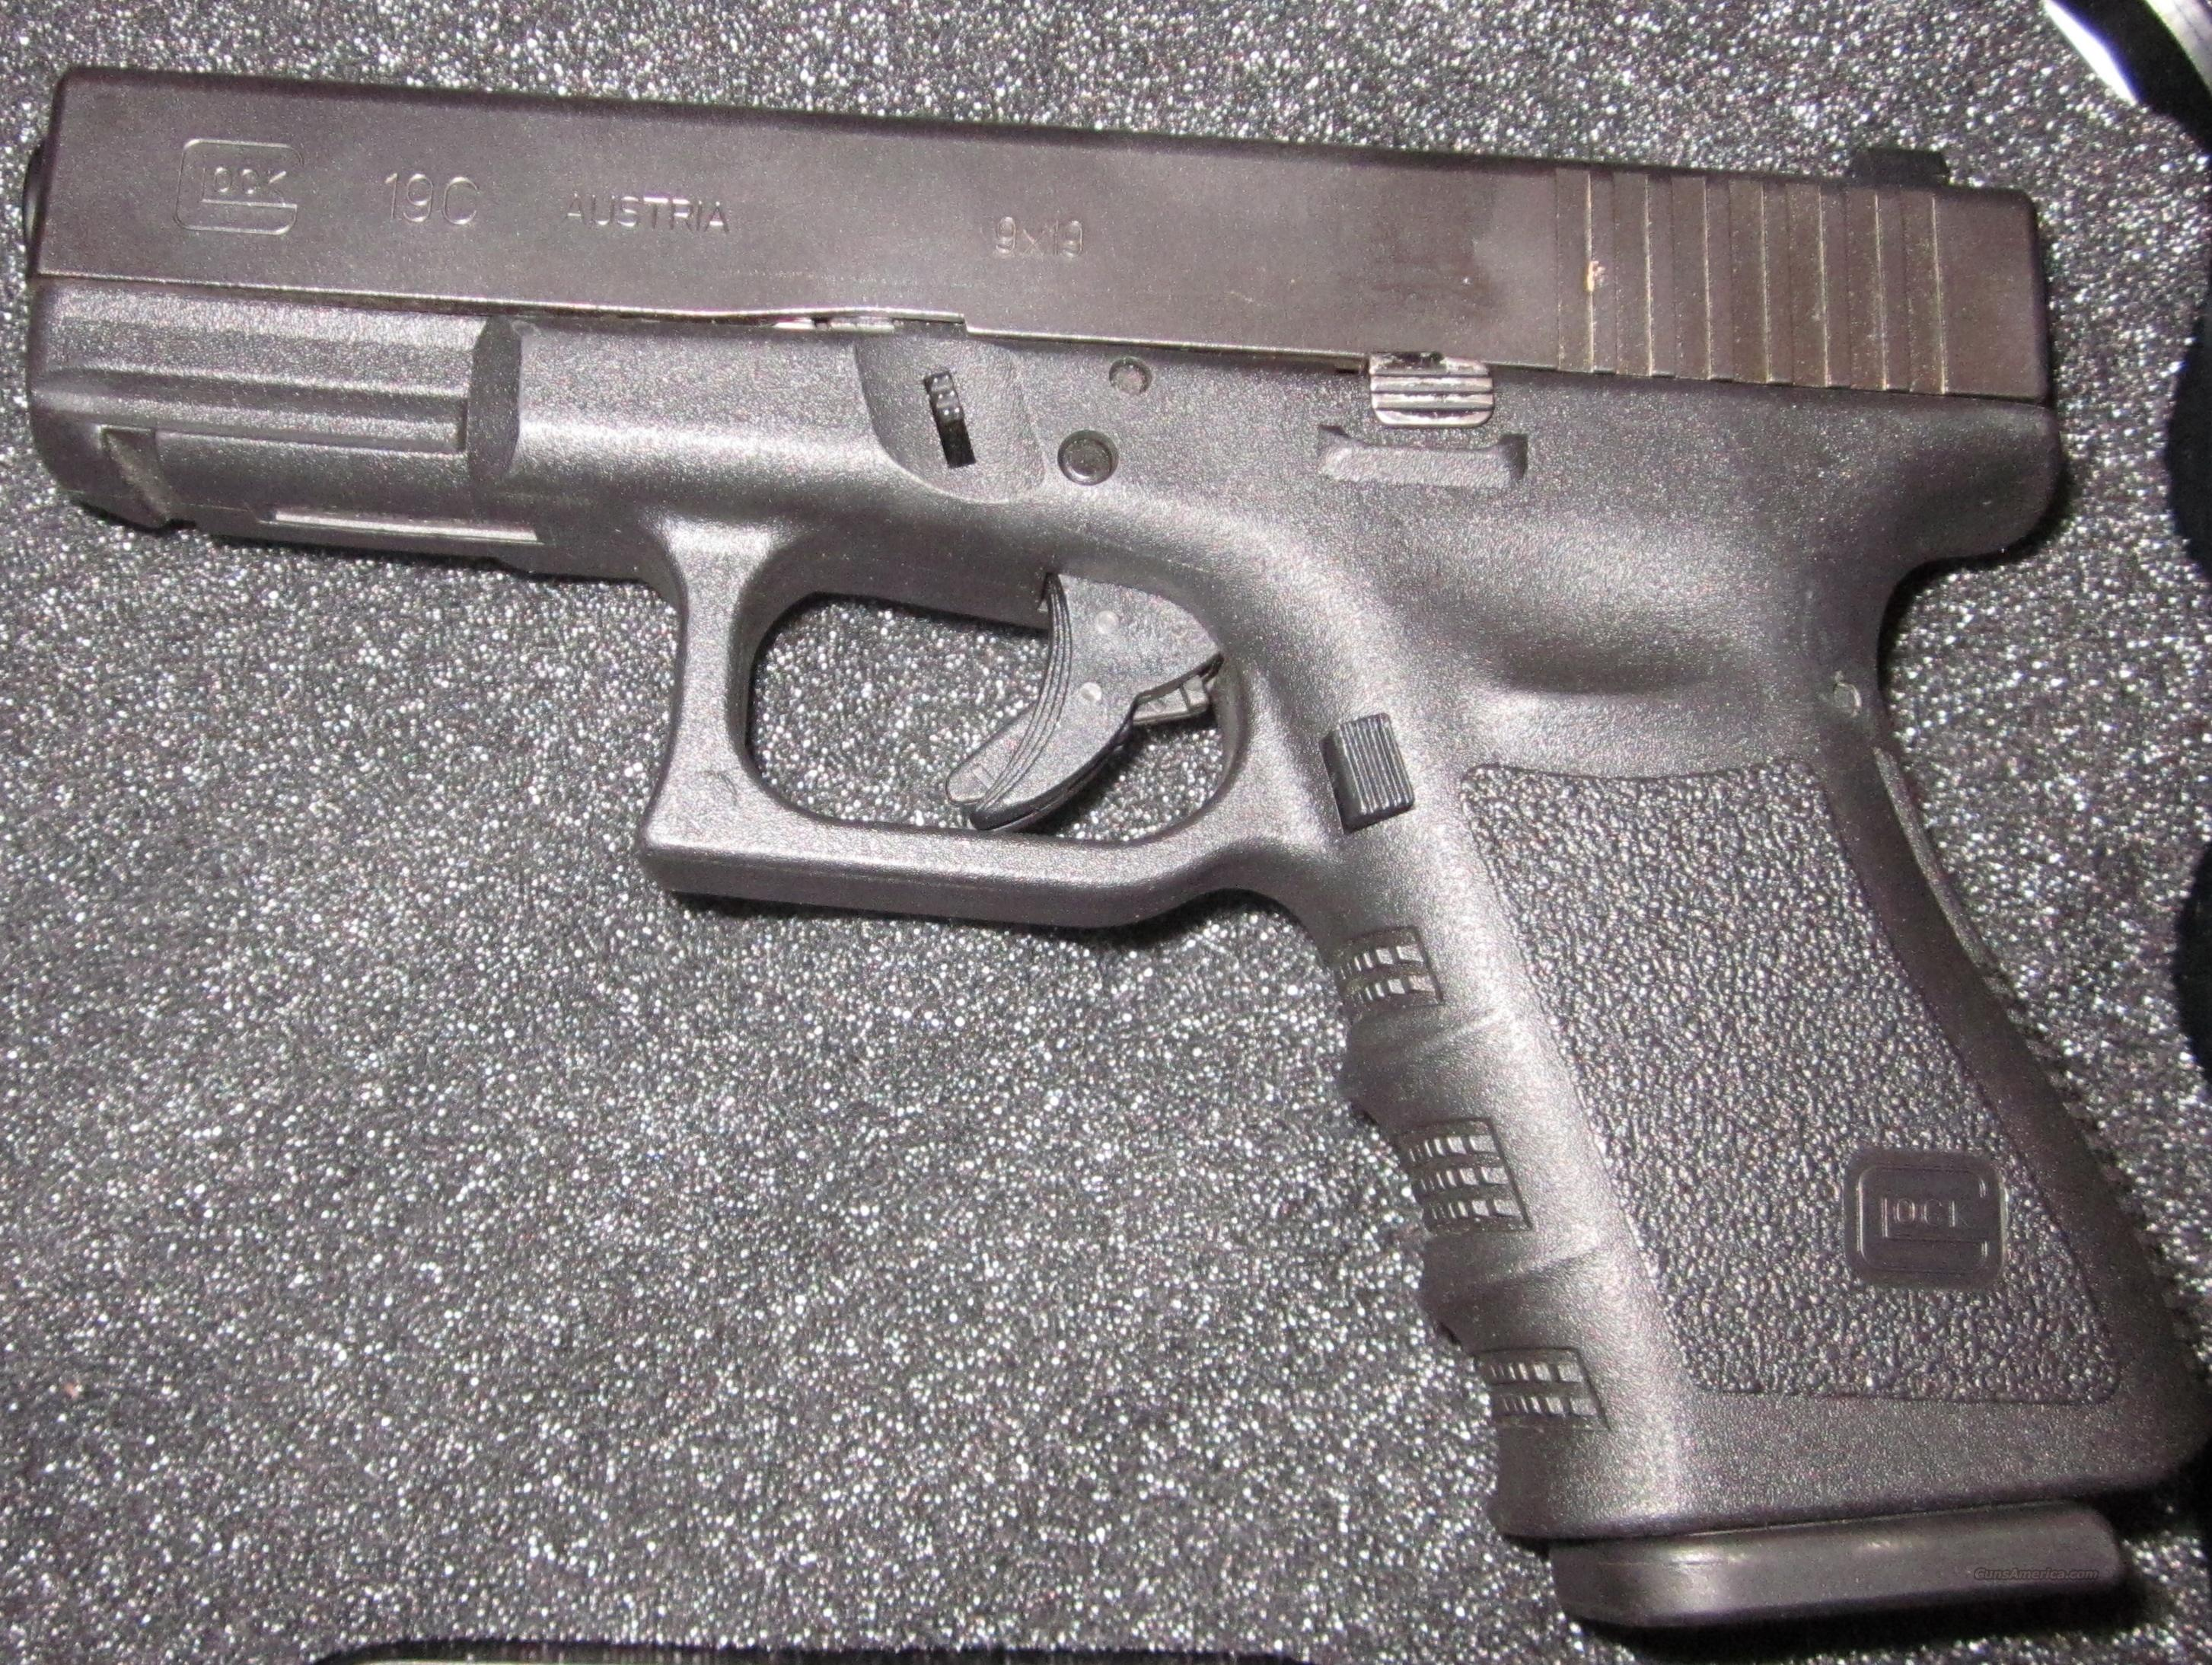 Glock 19c with 2 15 round Mags, Excellent condition  Guns > Pistols > Glock Pistols > 19